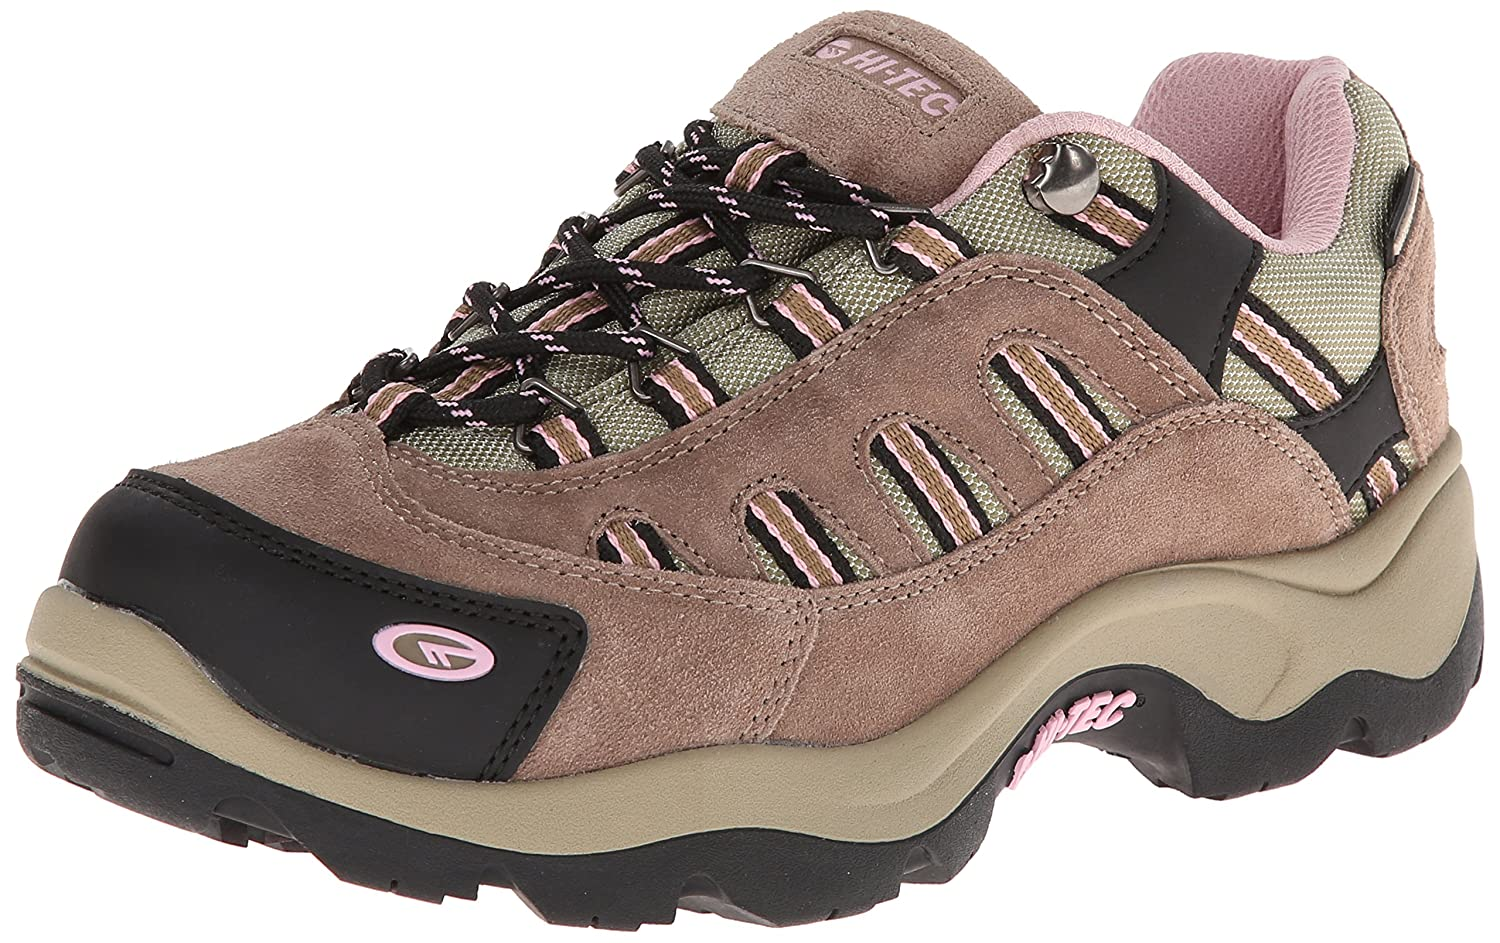 Hi-Tec Women's Bandera Low Waterproof Trail Running Shoe B00H4U5S6A 8 B(M) US|Taupe/Blush